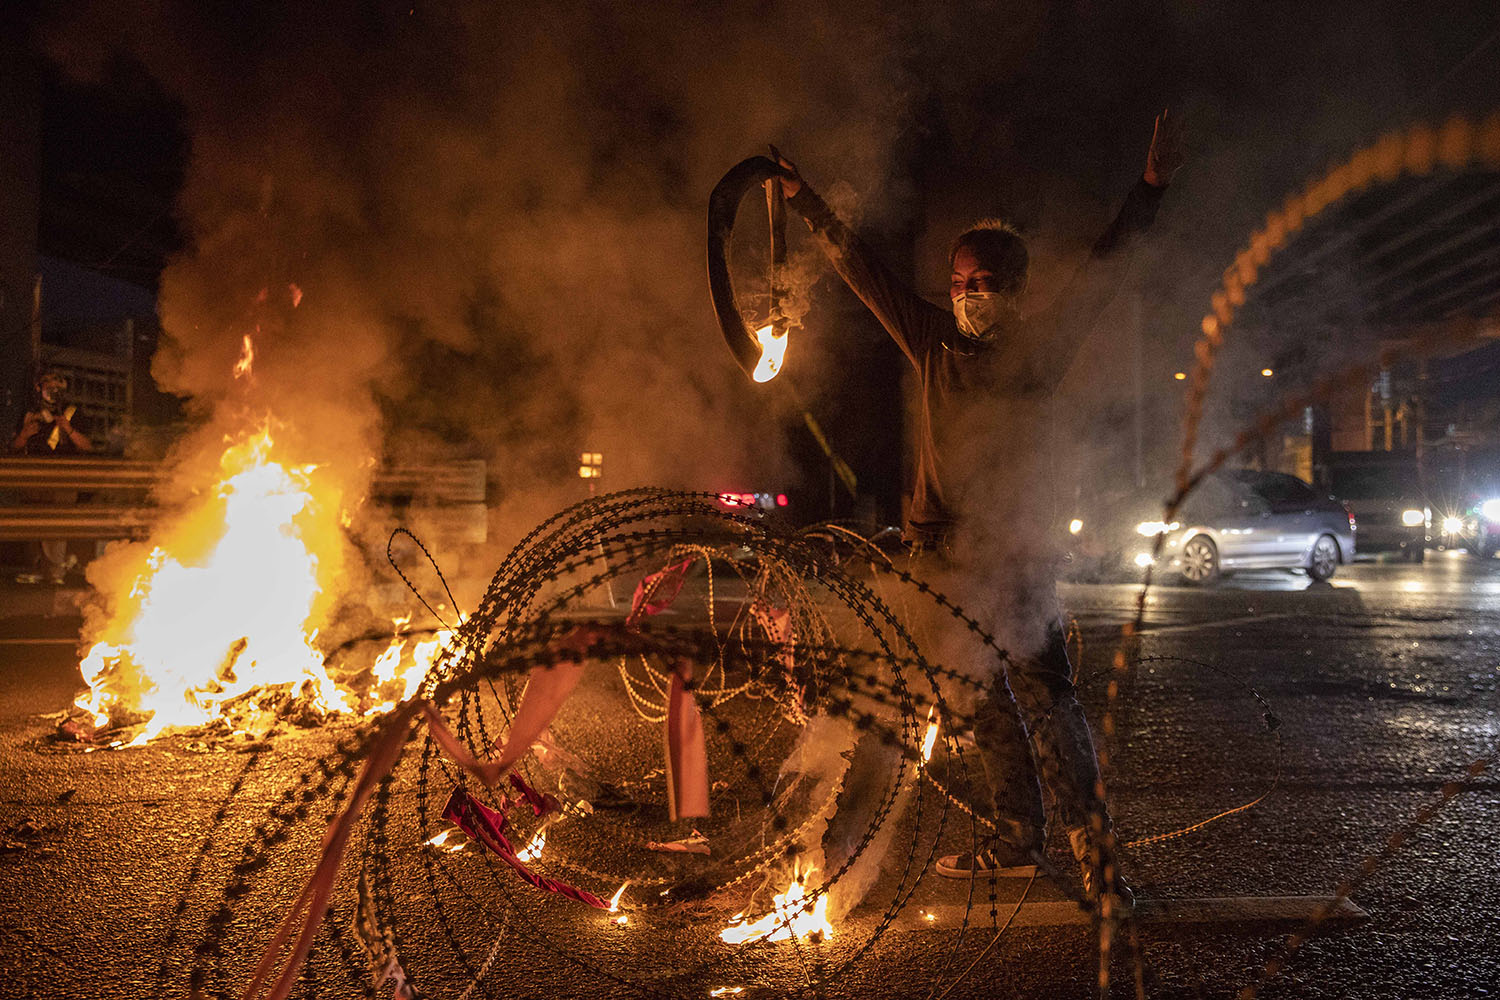 Anti-government protesters light tires on fire during a rally in Bangkok on Sept. 6. Lauren DeCicca/Getty Images